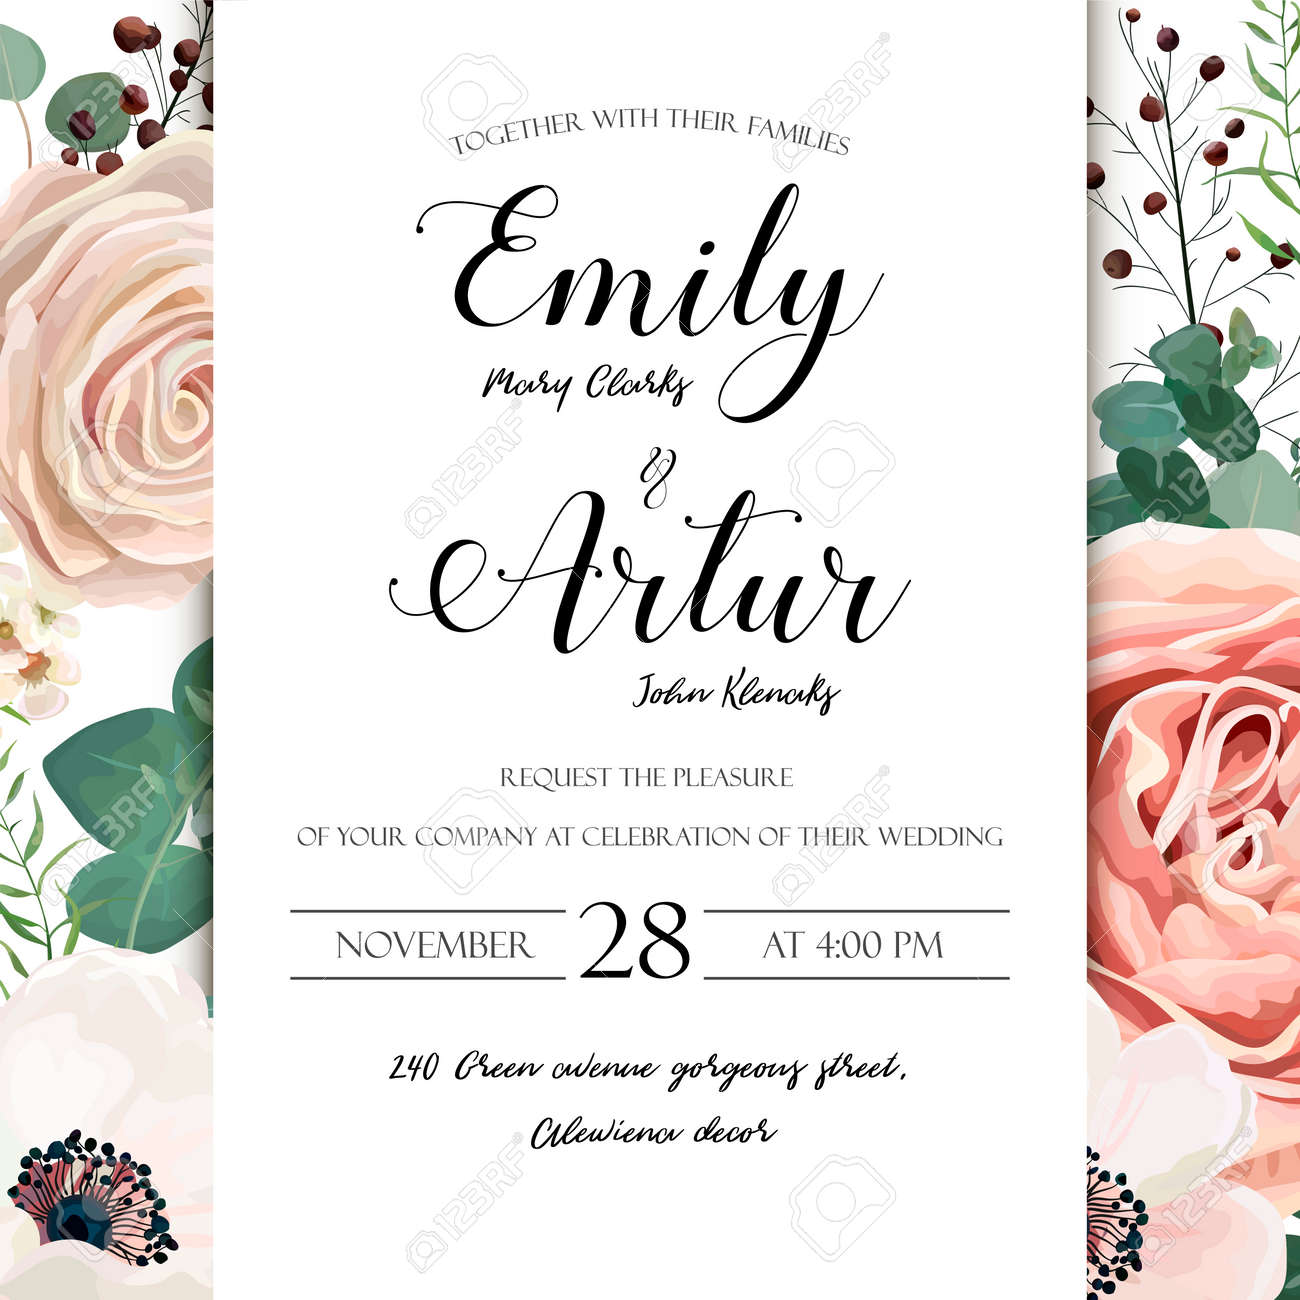 floral wedding invitation elegant invite card vector design